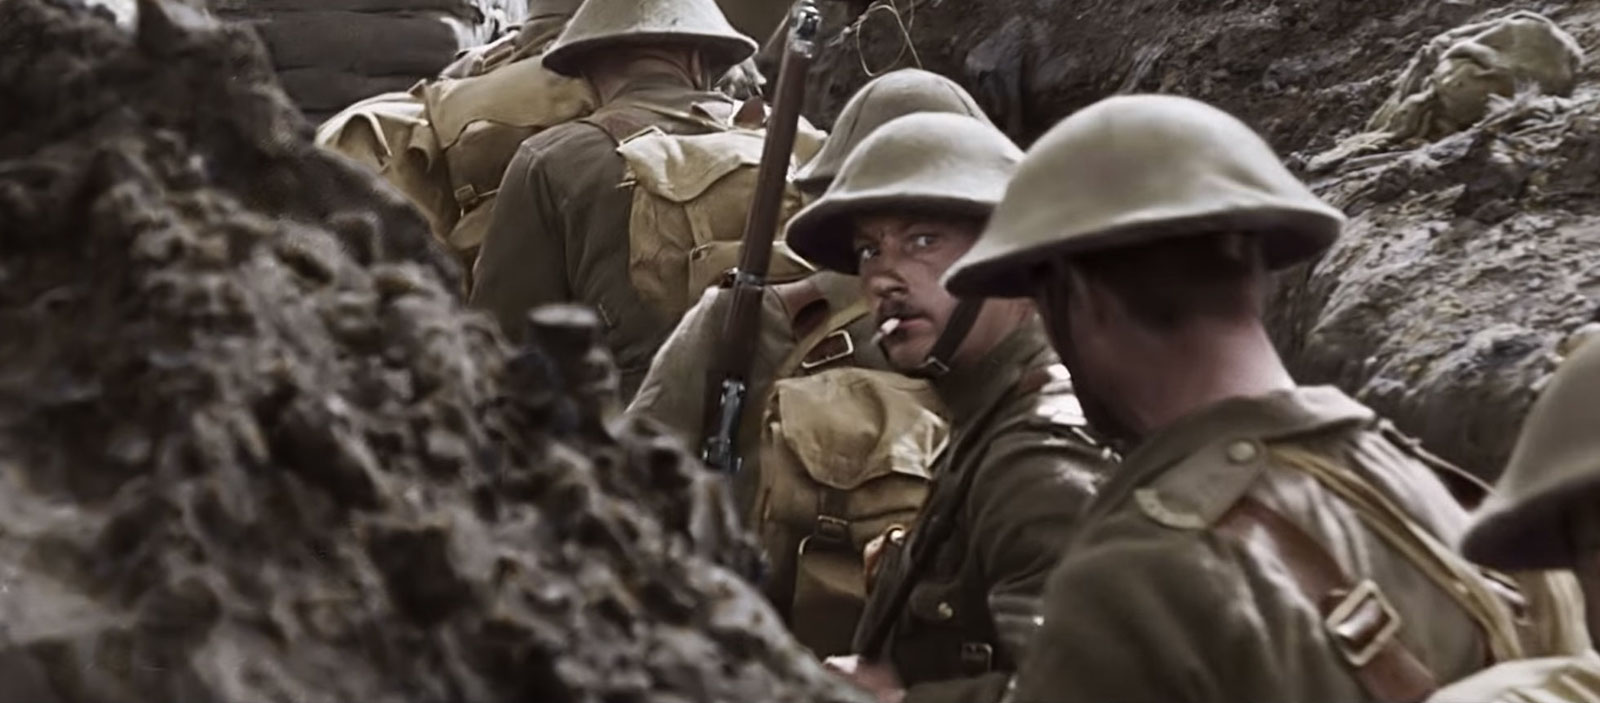 Peter Jackson draws on archives of original film footage to give veterans a voice